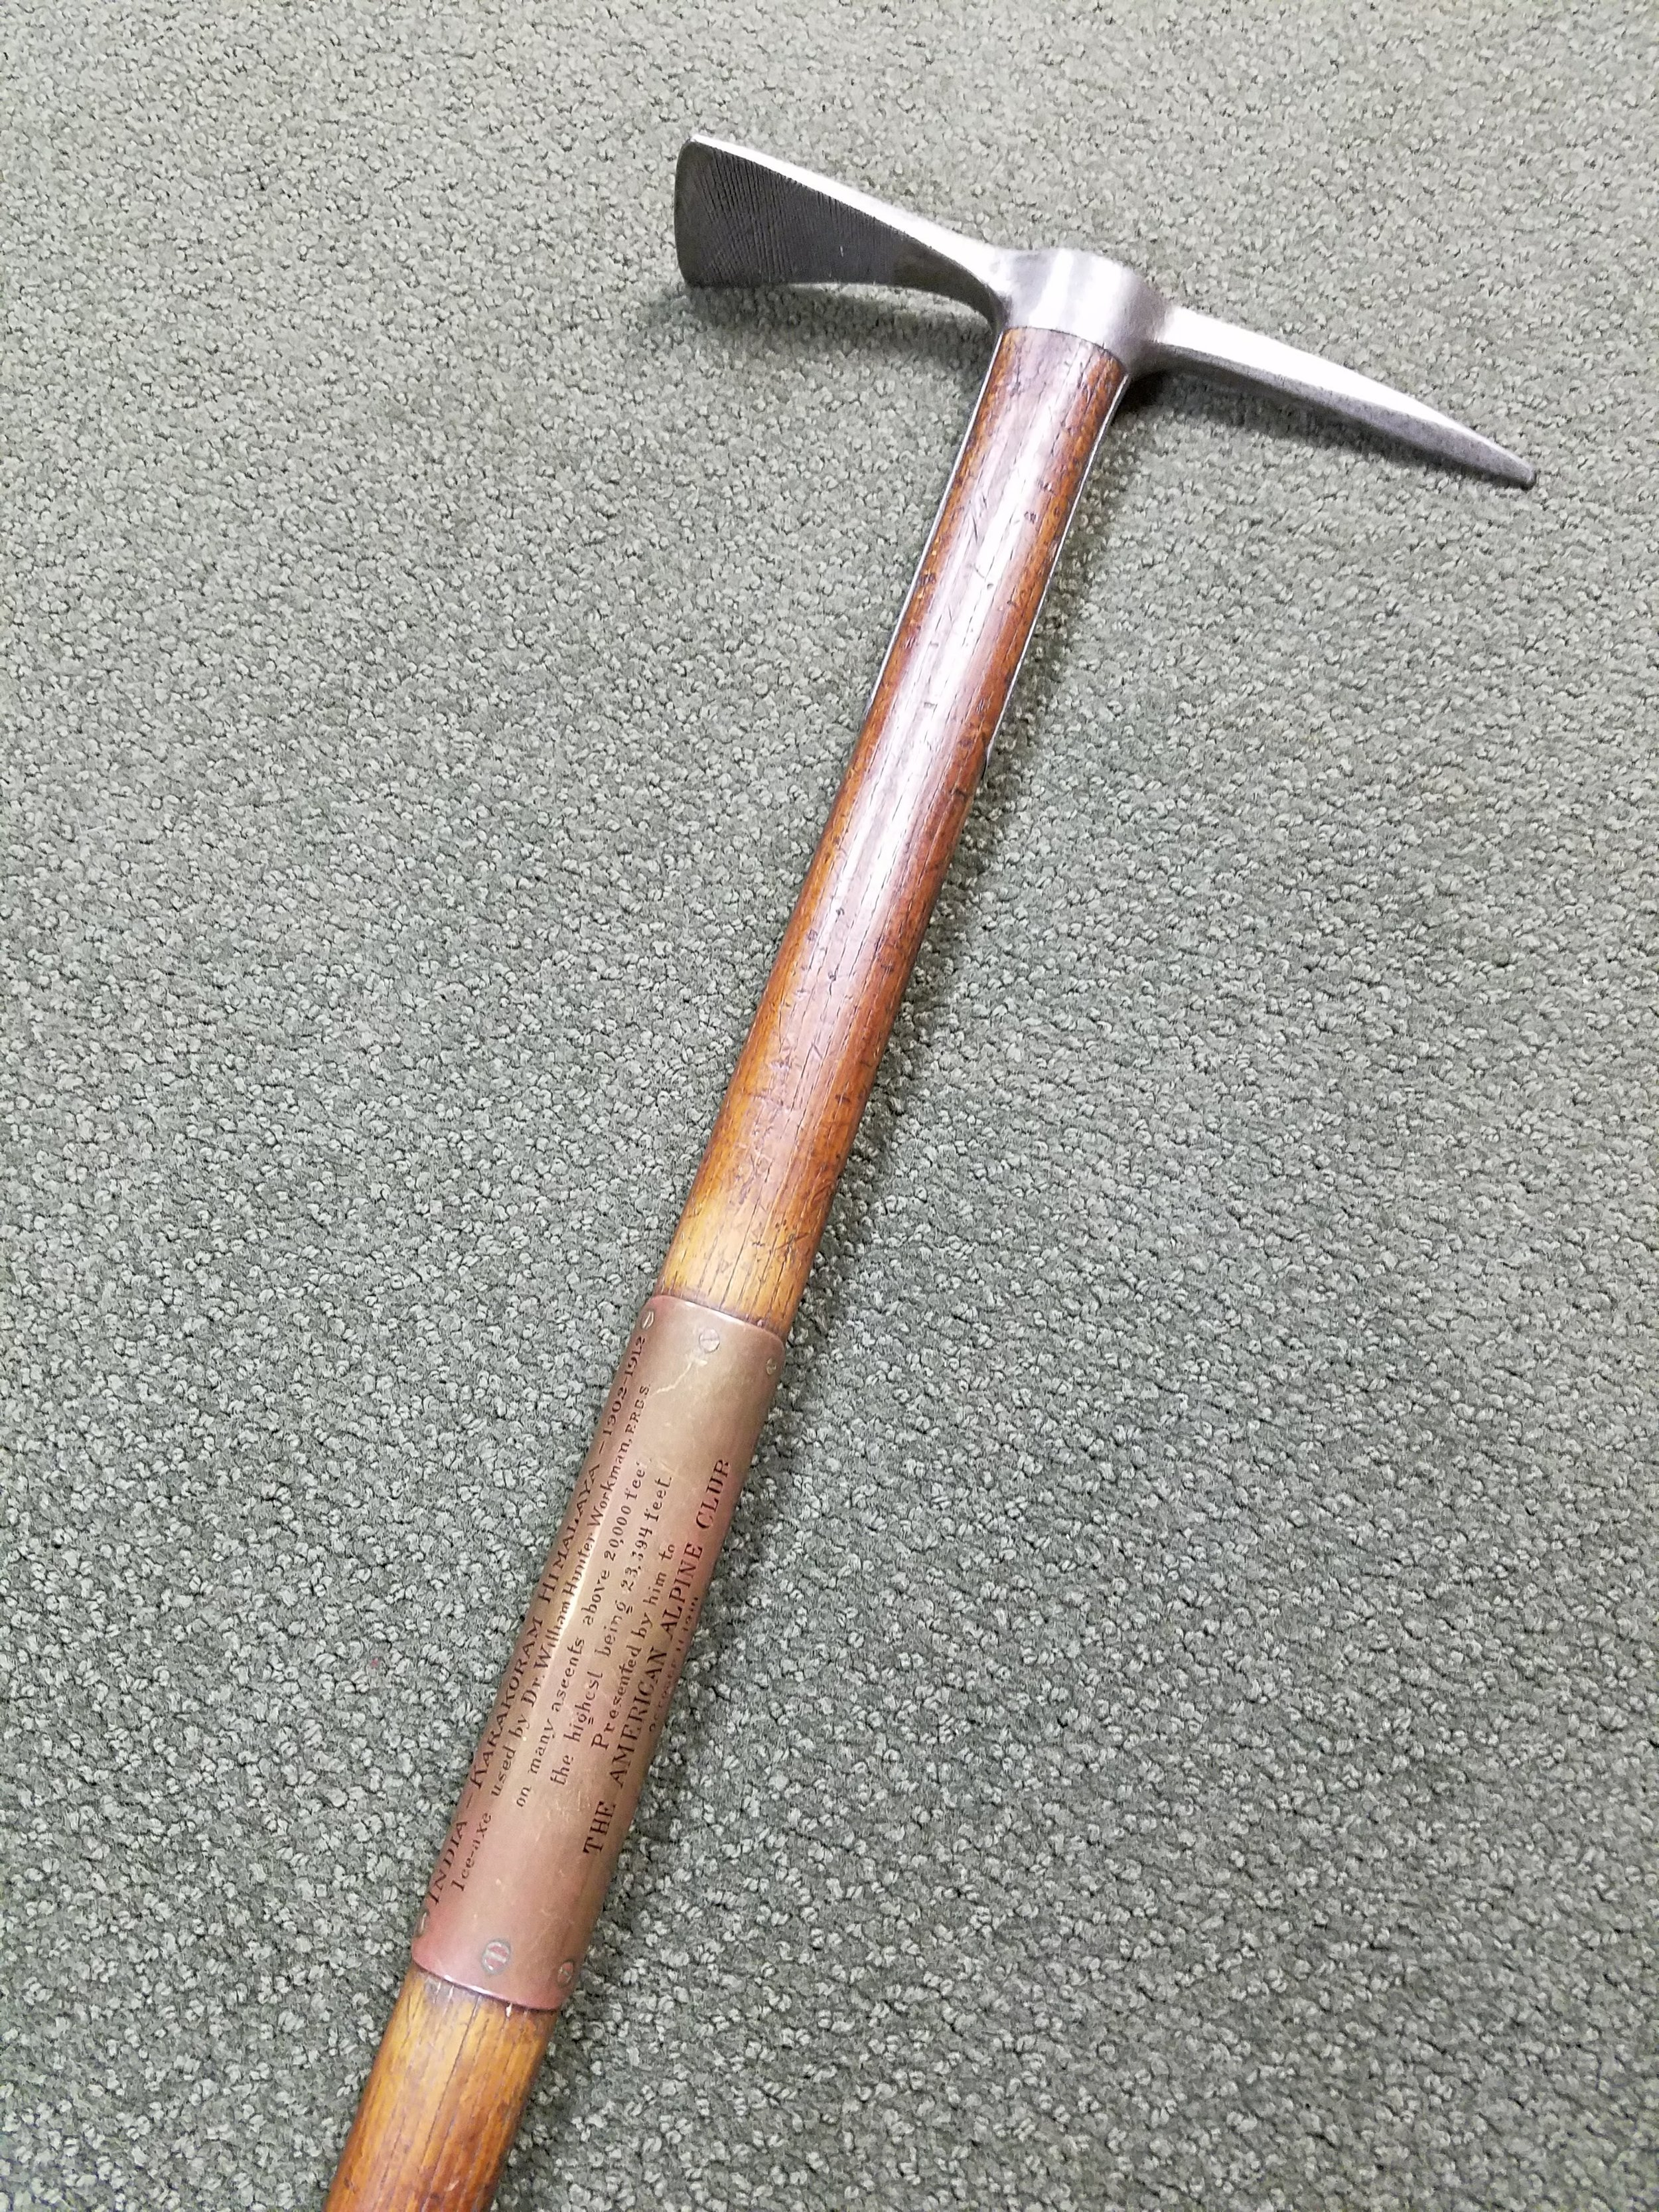 William Hunter Workman's ice axe. Workman was the husband of Fanny Bullock Workman.